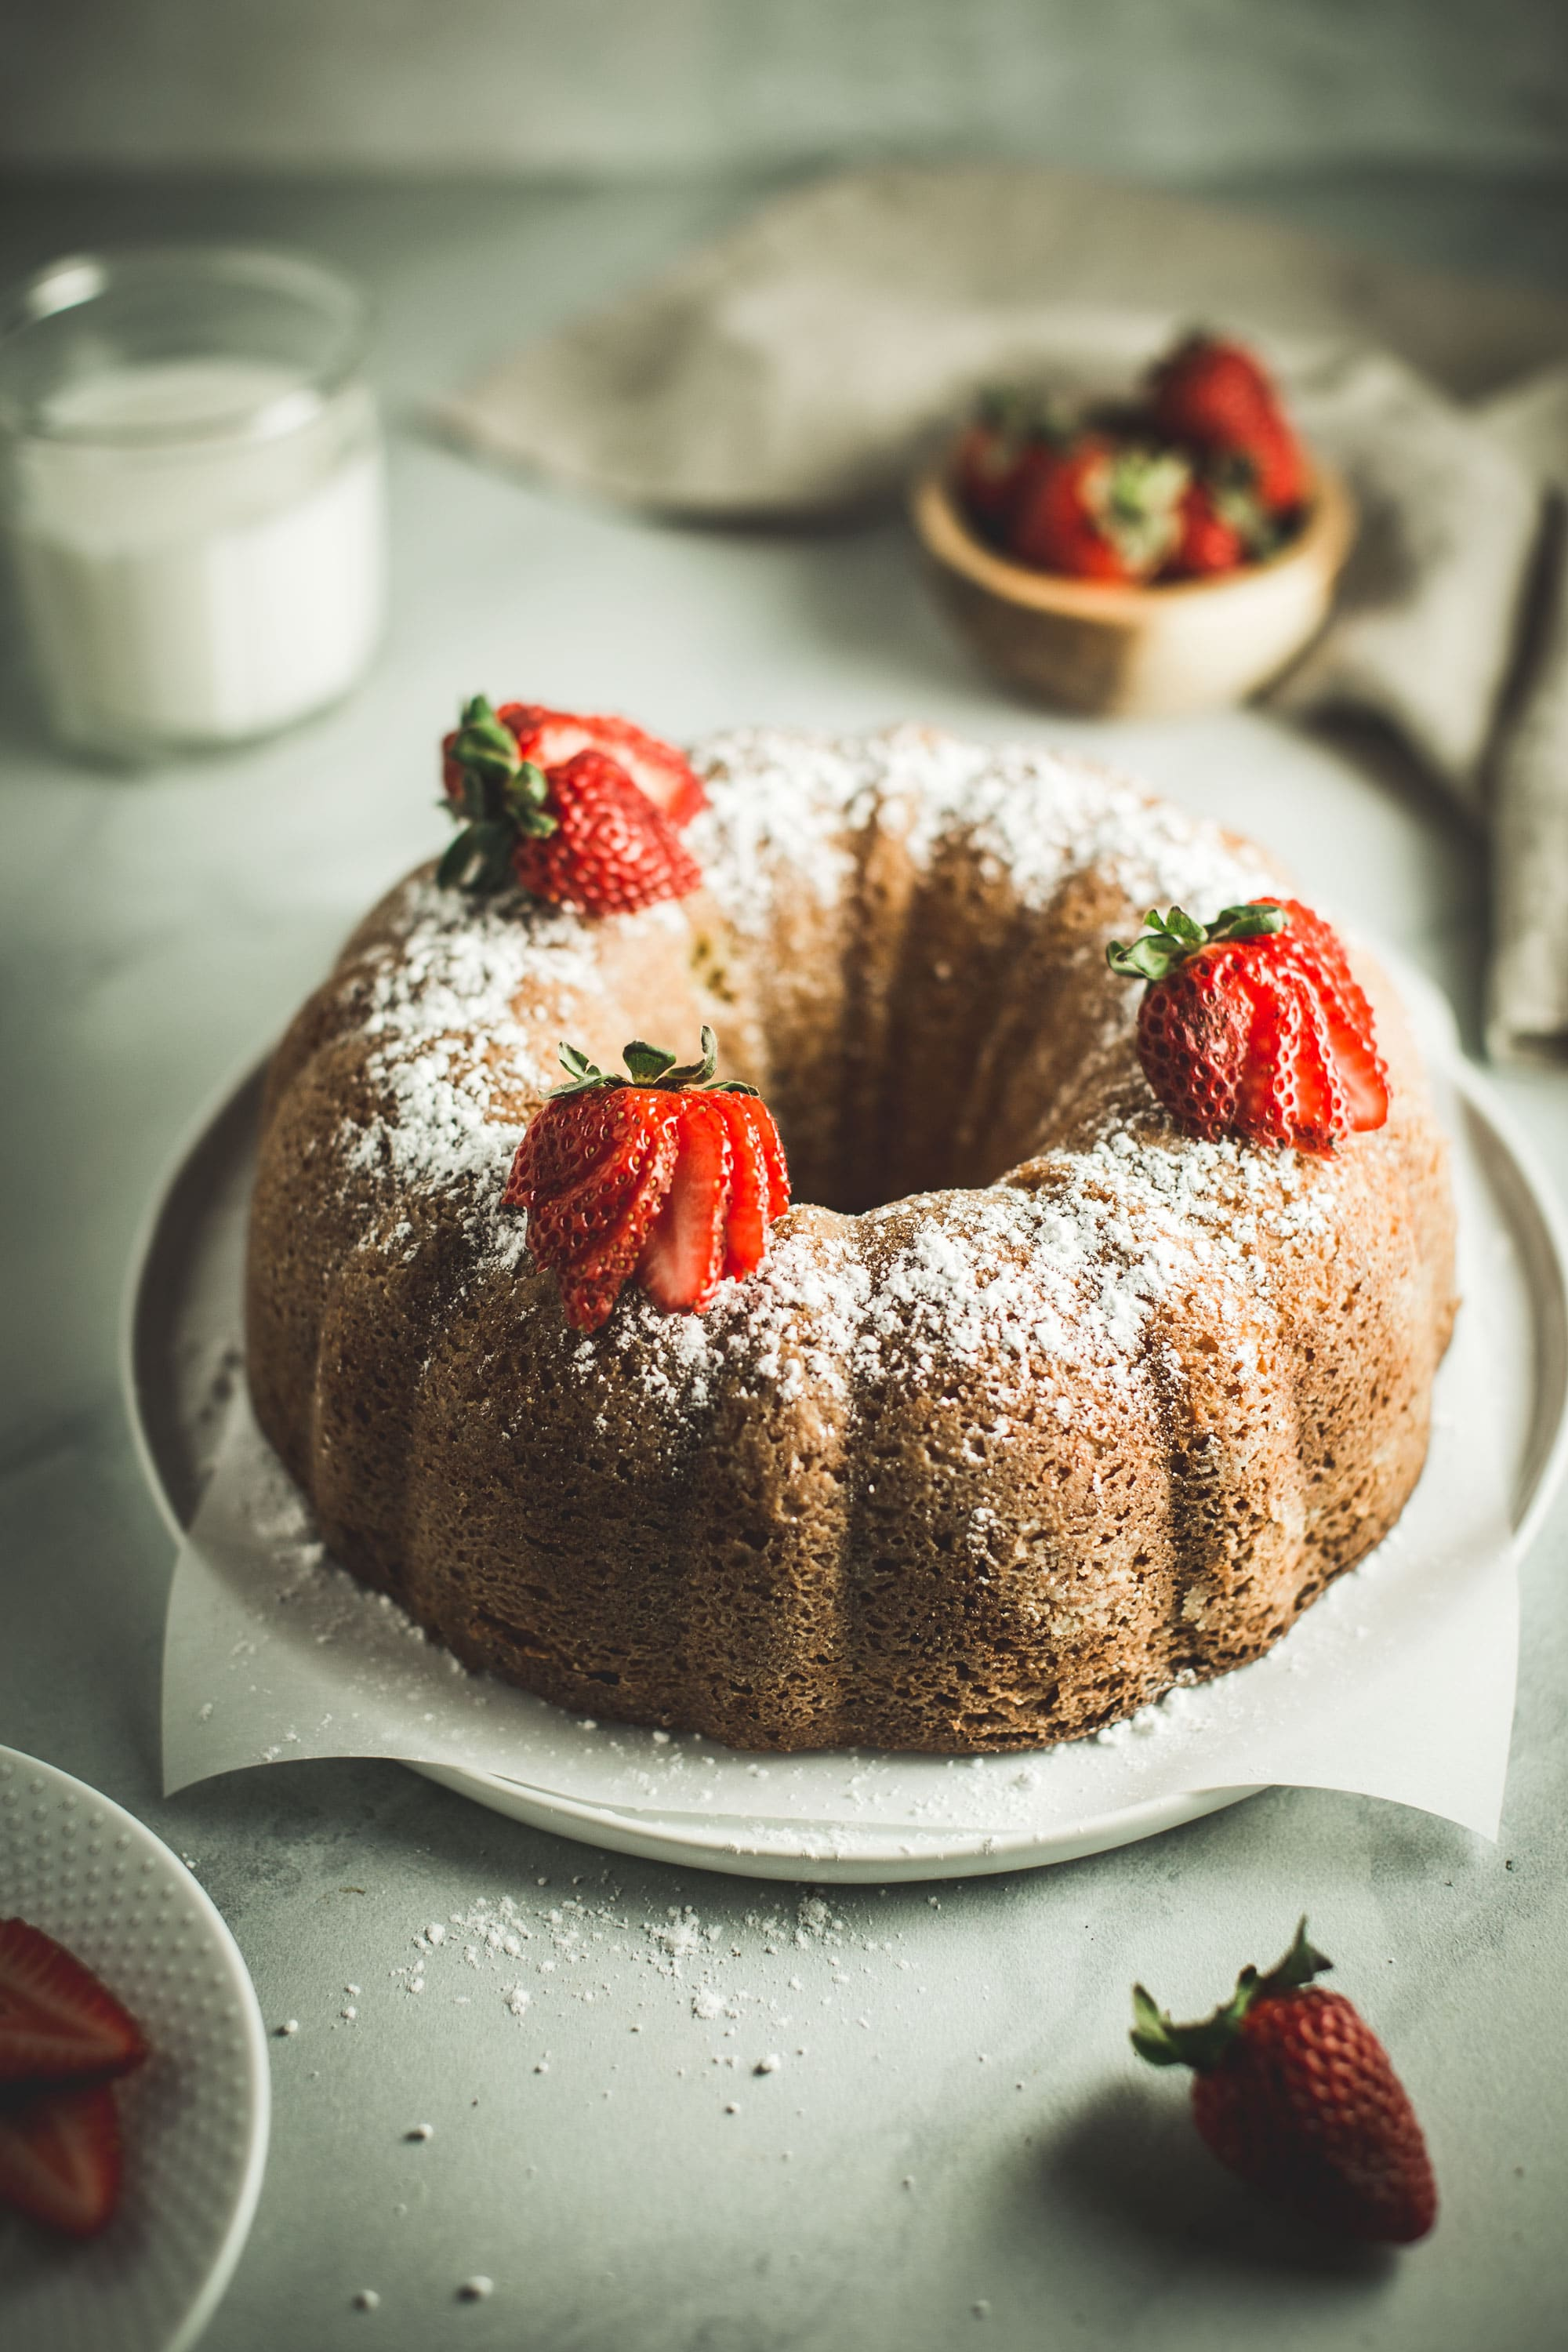 bundt cake covered in powdered sugar and topped with sliced strawberries